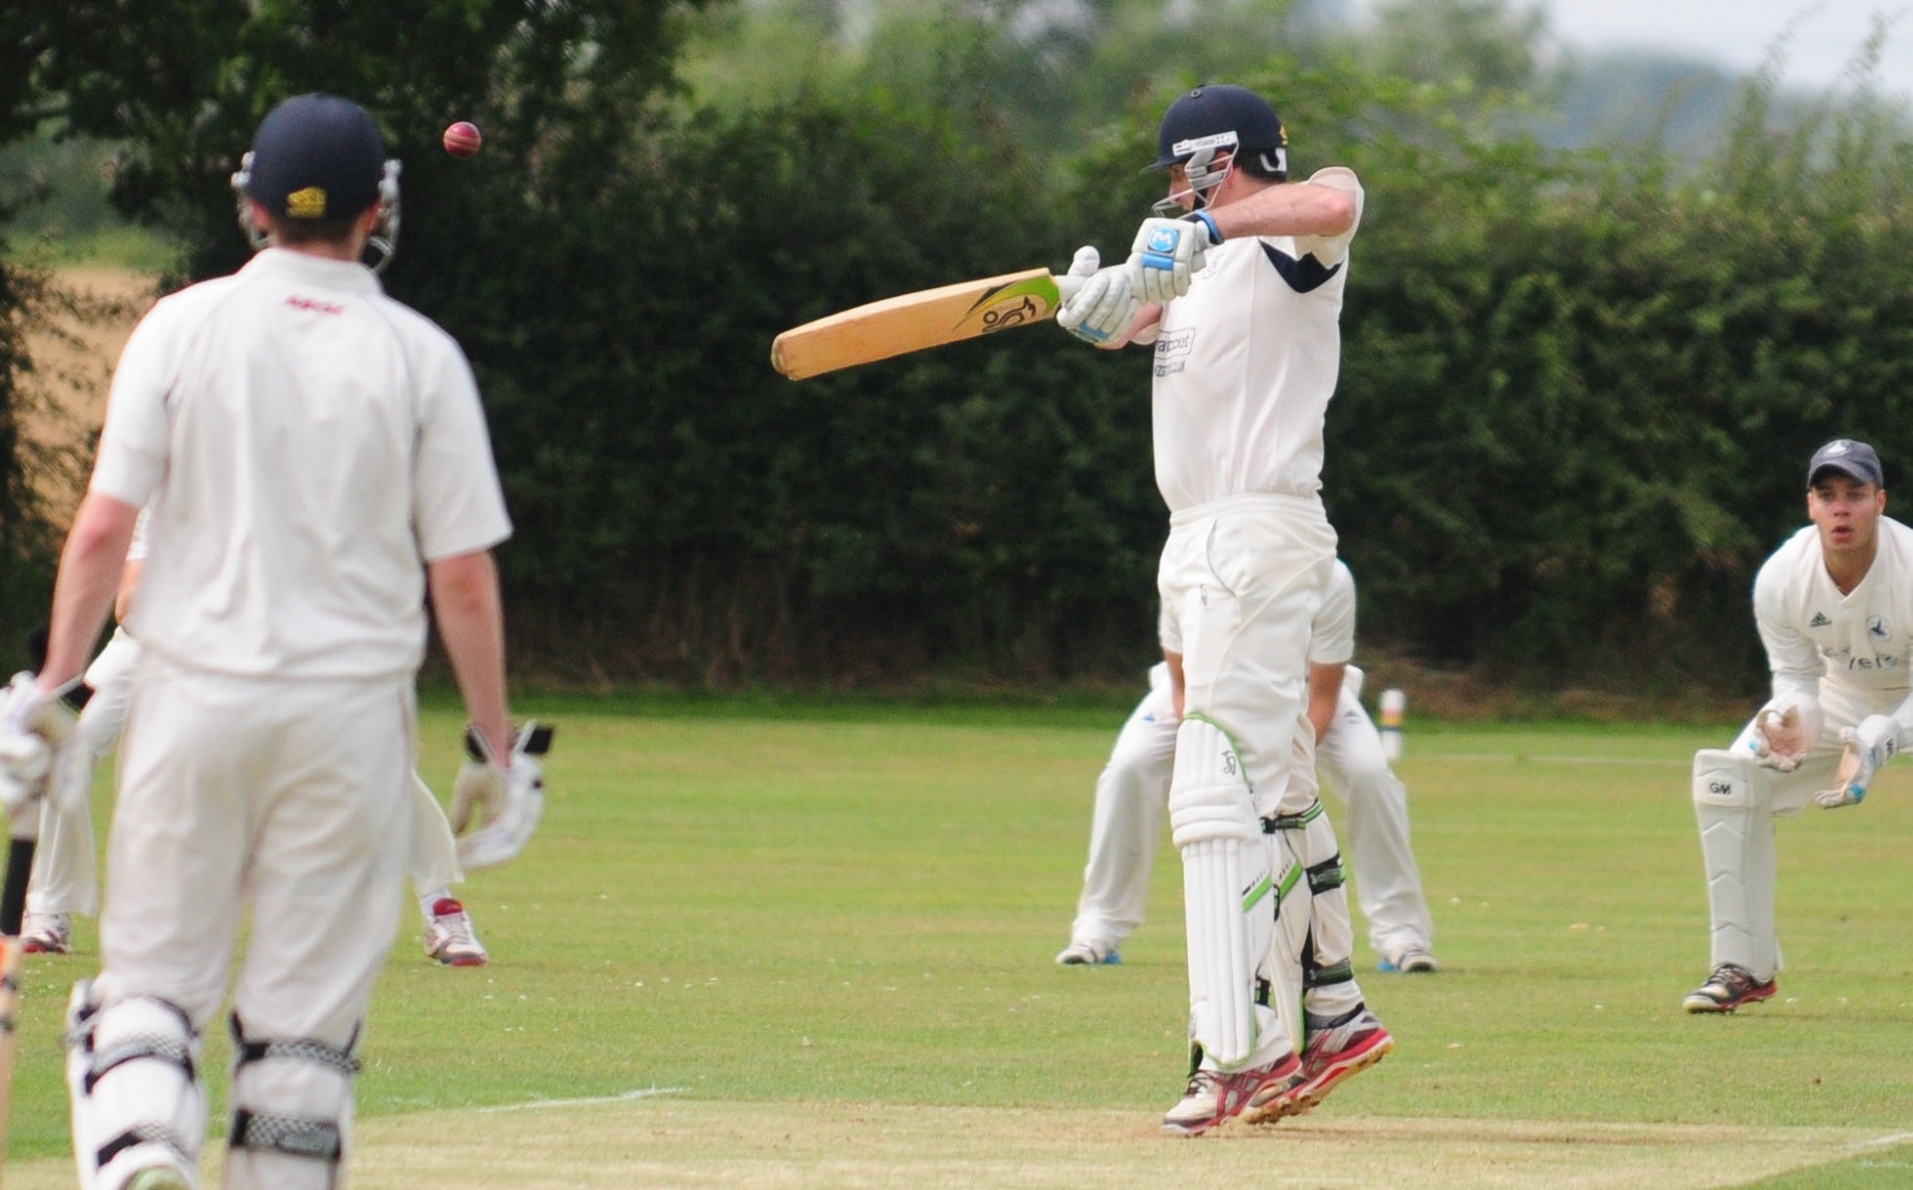 Senior Cricket League: Easingwold up to second following Beverley victory